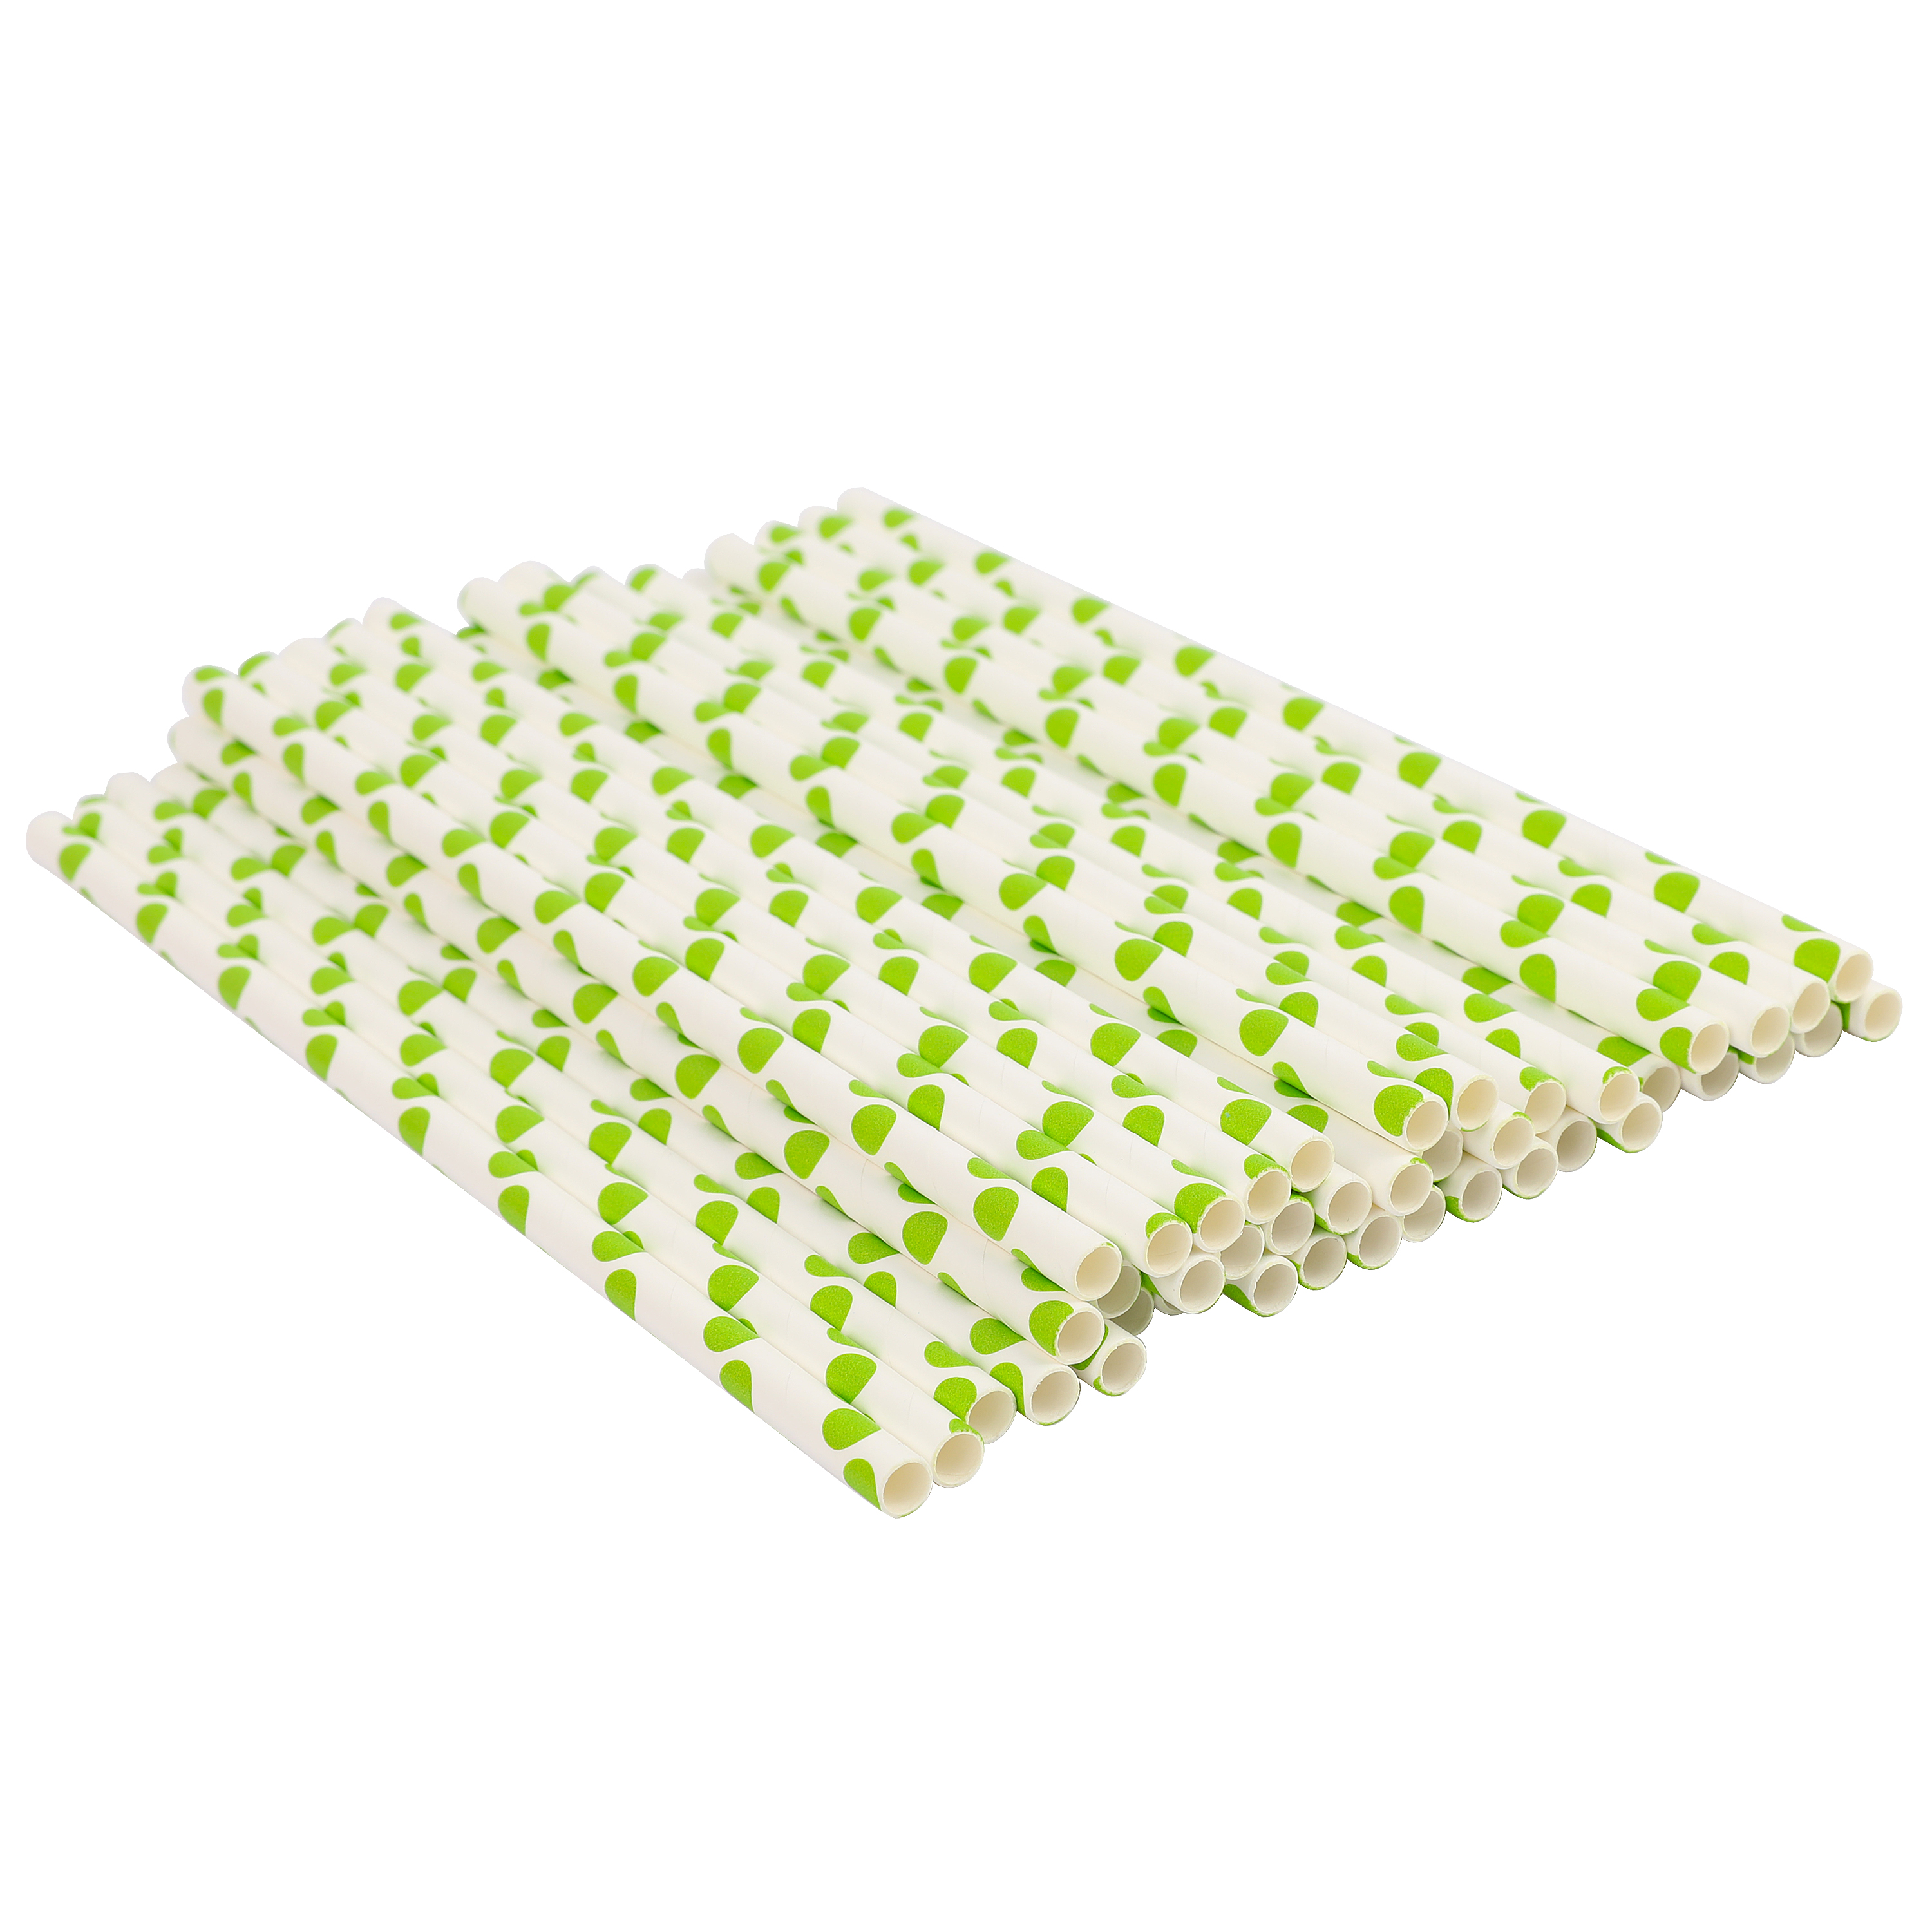 Wholesale top quality biodegradable polka dot paper straws